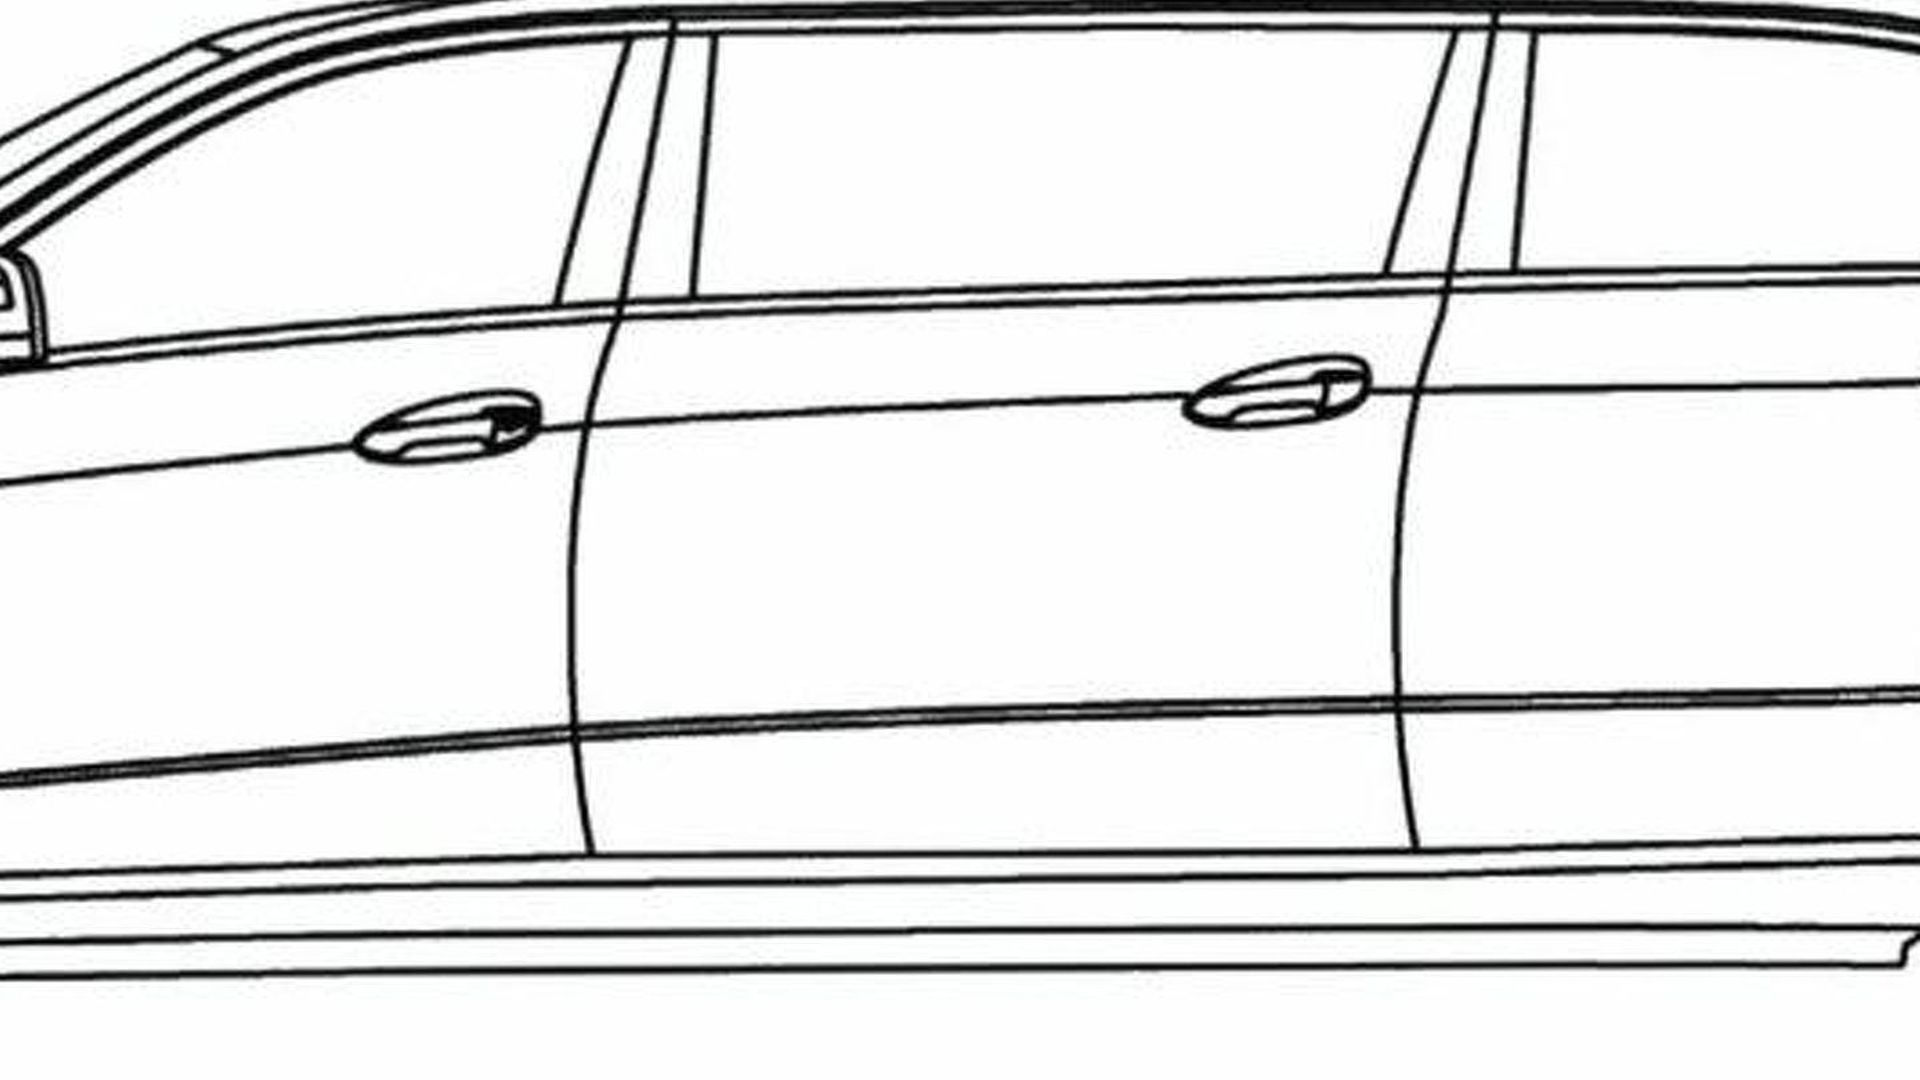 Mercedes E Class Limo Sketches Surface